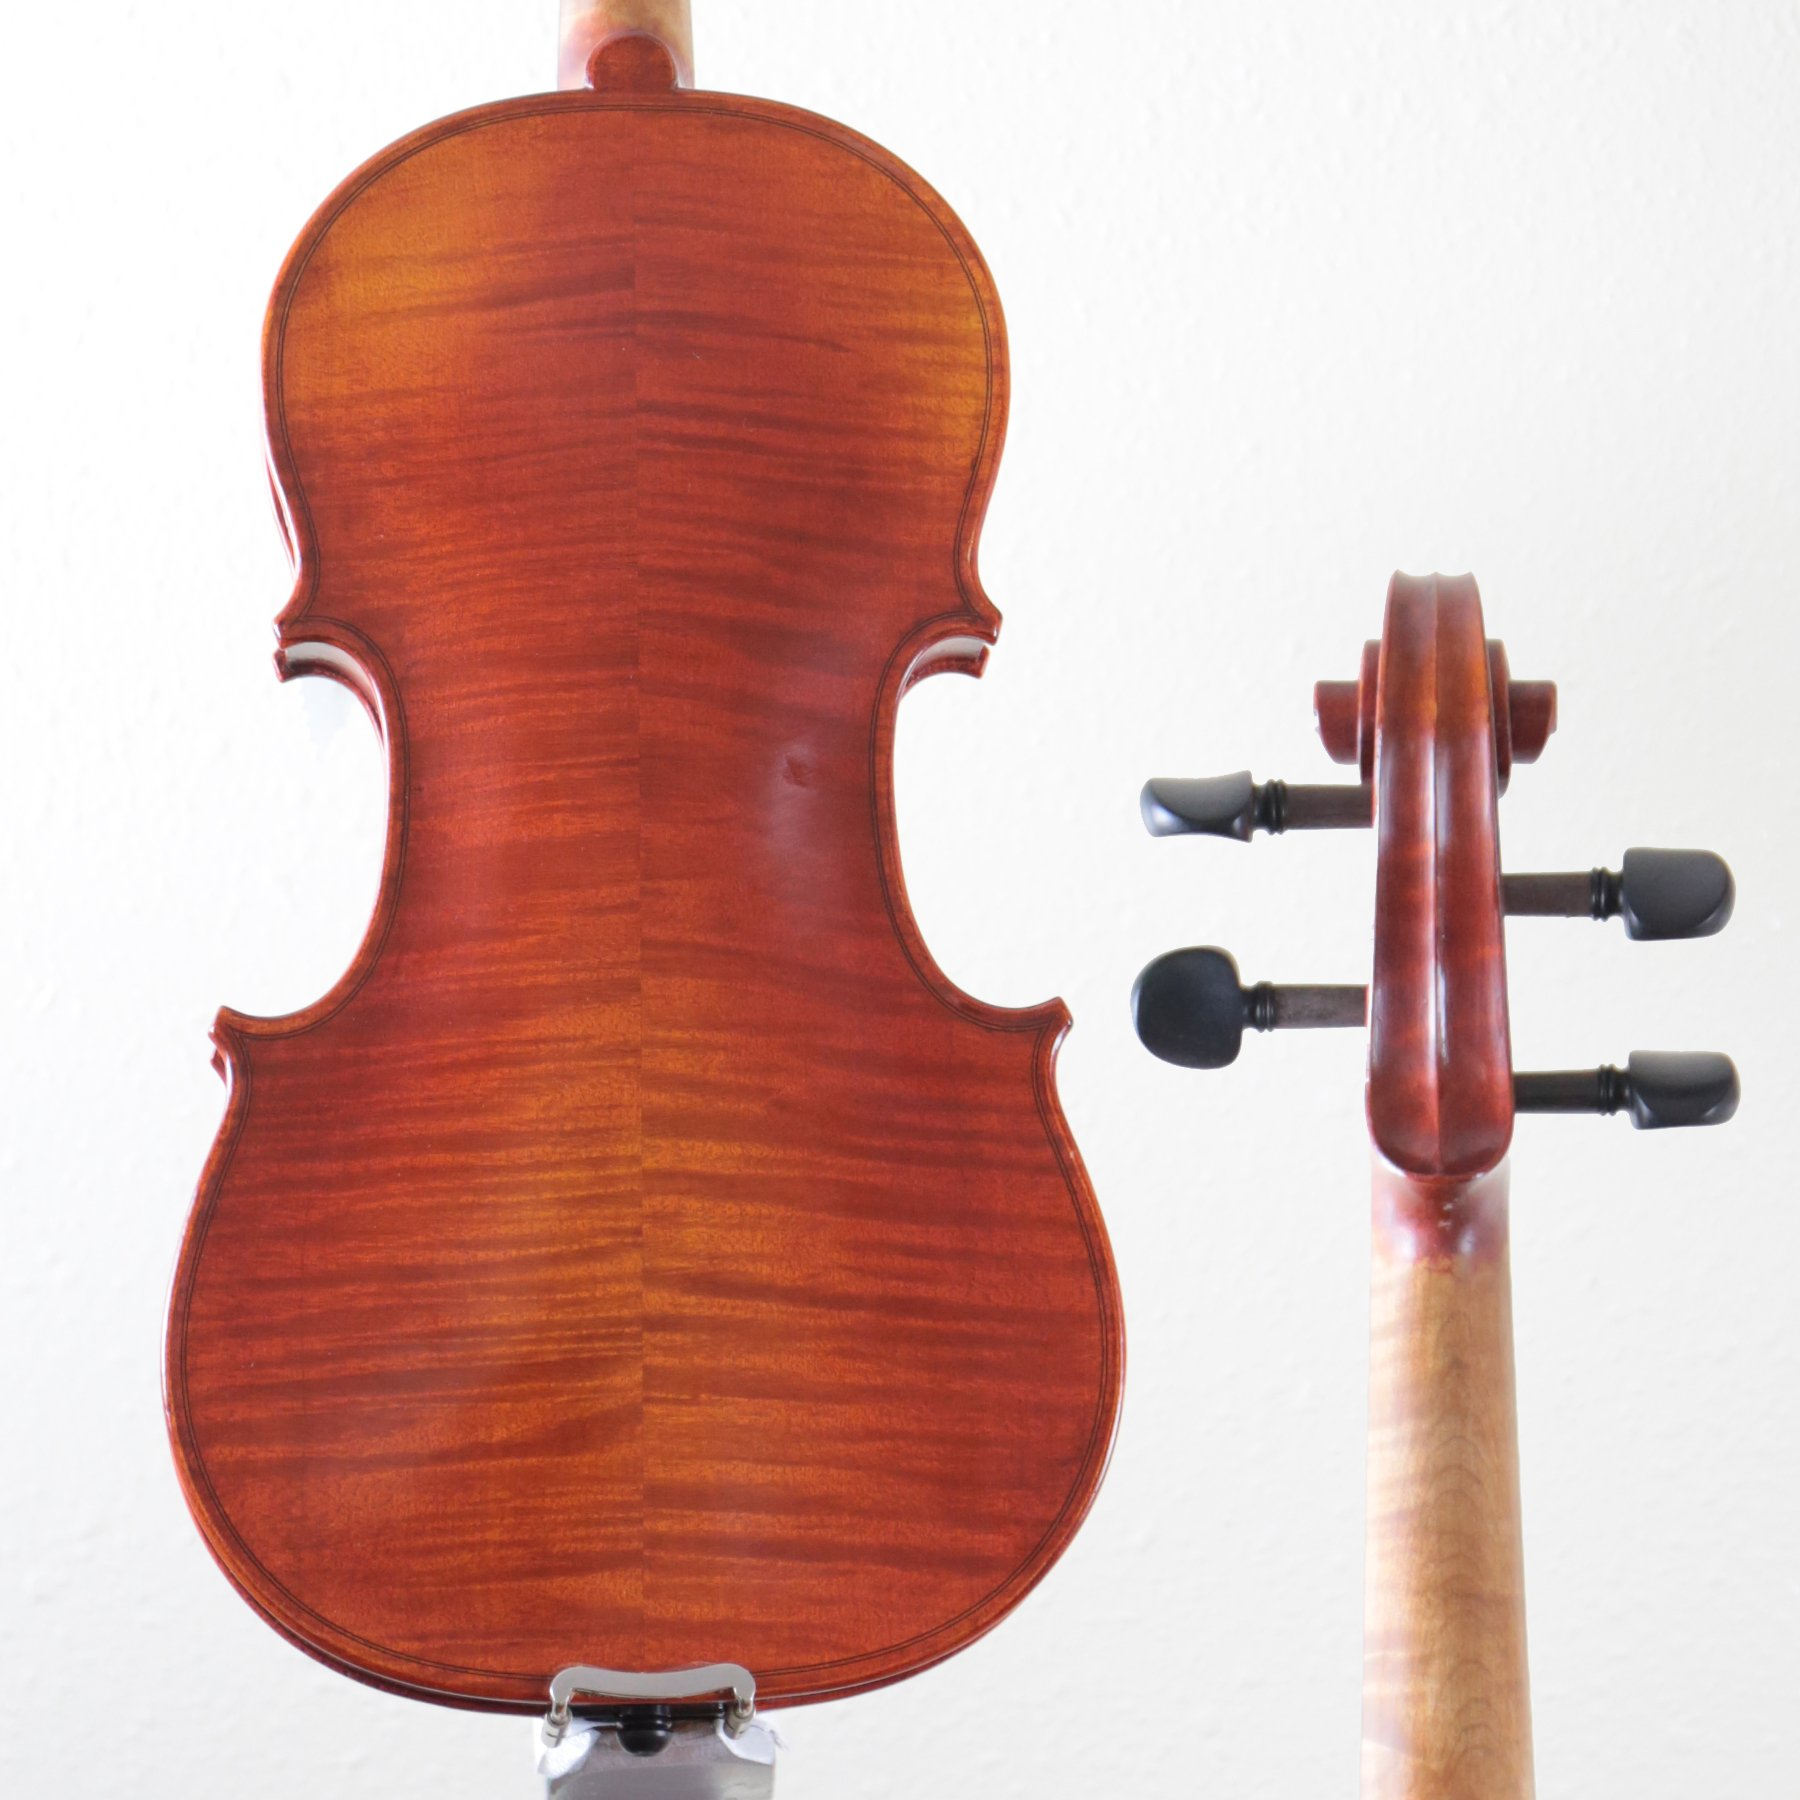 G135 Yamaha V-5 3/4 Size Violin in action